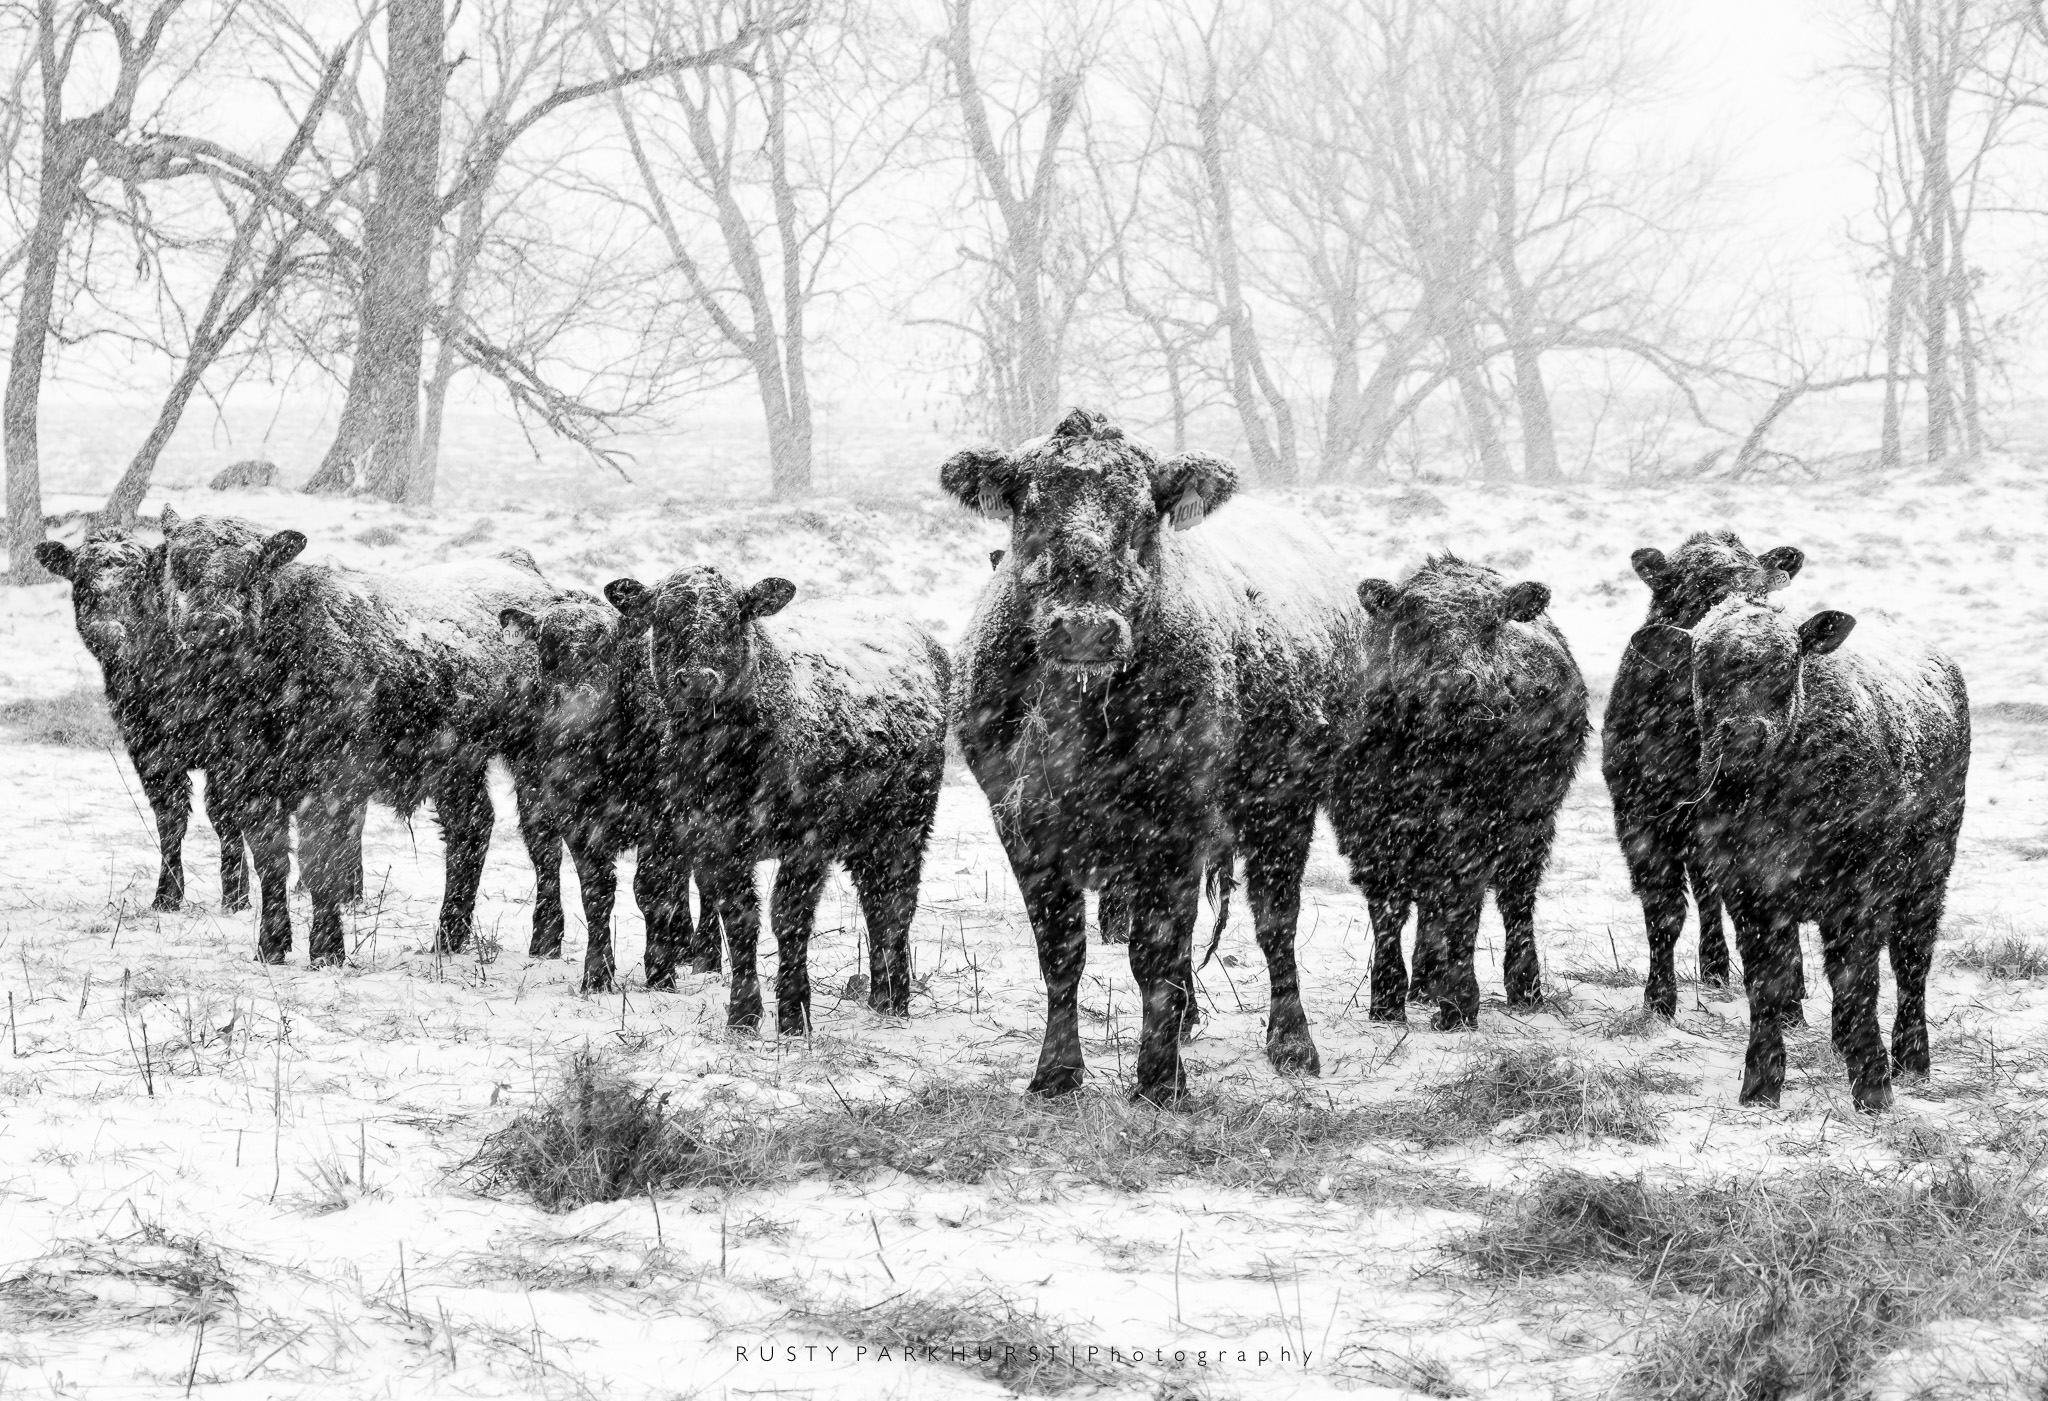 Snowy Cows   - taken February 15, 2015.  Sometimes images just present themselves.  Driving the country roads close to home during this winter storm, I noticed these cows grouped together near the fence.  When I stopped, they gathered close and just seemed to pose for this image.